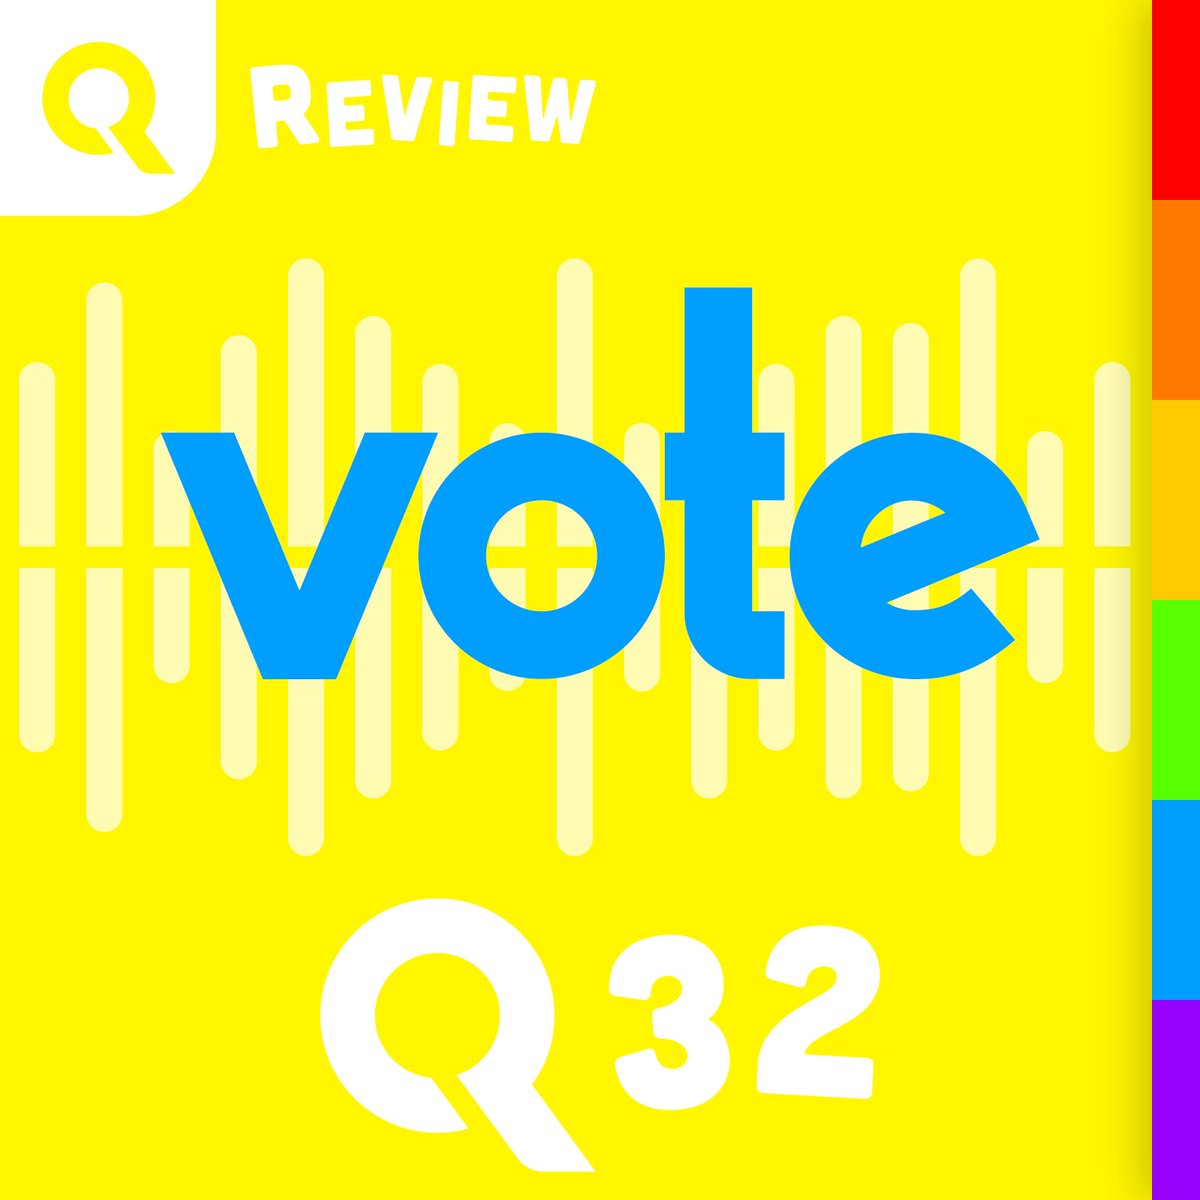 THE Q32 LGBTQ MUSIC CHART Voting closes soon and a new chart will be revealed. If you haven't voted for your faves yet get to https://t.co/YZRYo7iLp5 now!  Will @asolimanmusic make it 2 weeks at #1? Or will it be @frankymofficiel  #PRIDE2020 #LGBTQ #LGBT #lgbtmusic #NewMusic https://t.co/LJEk0fiNzZ